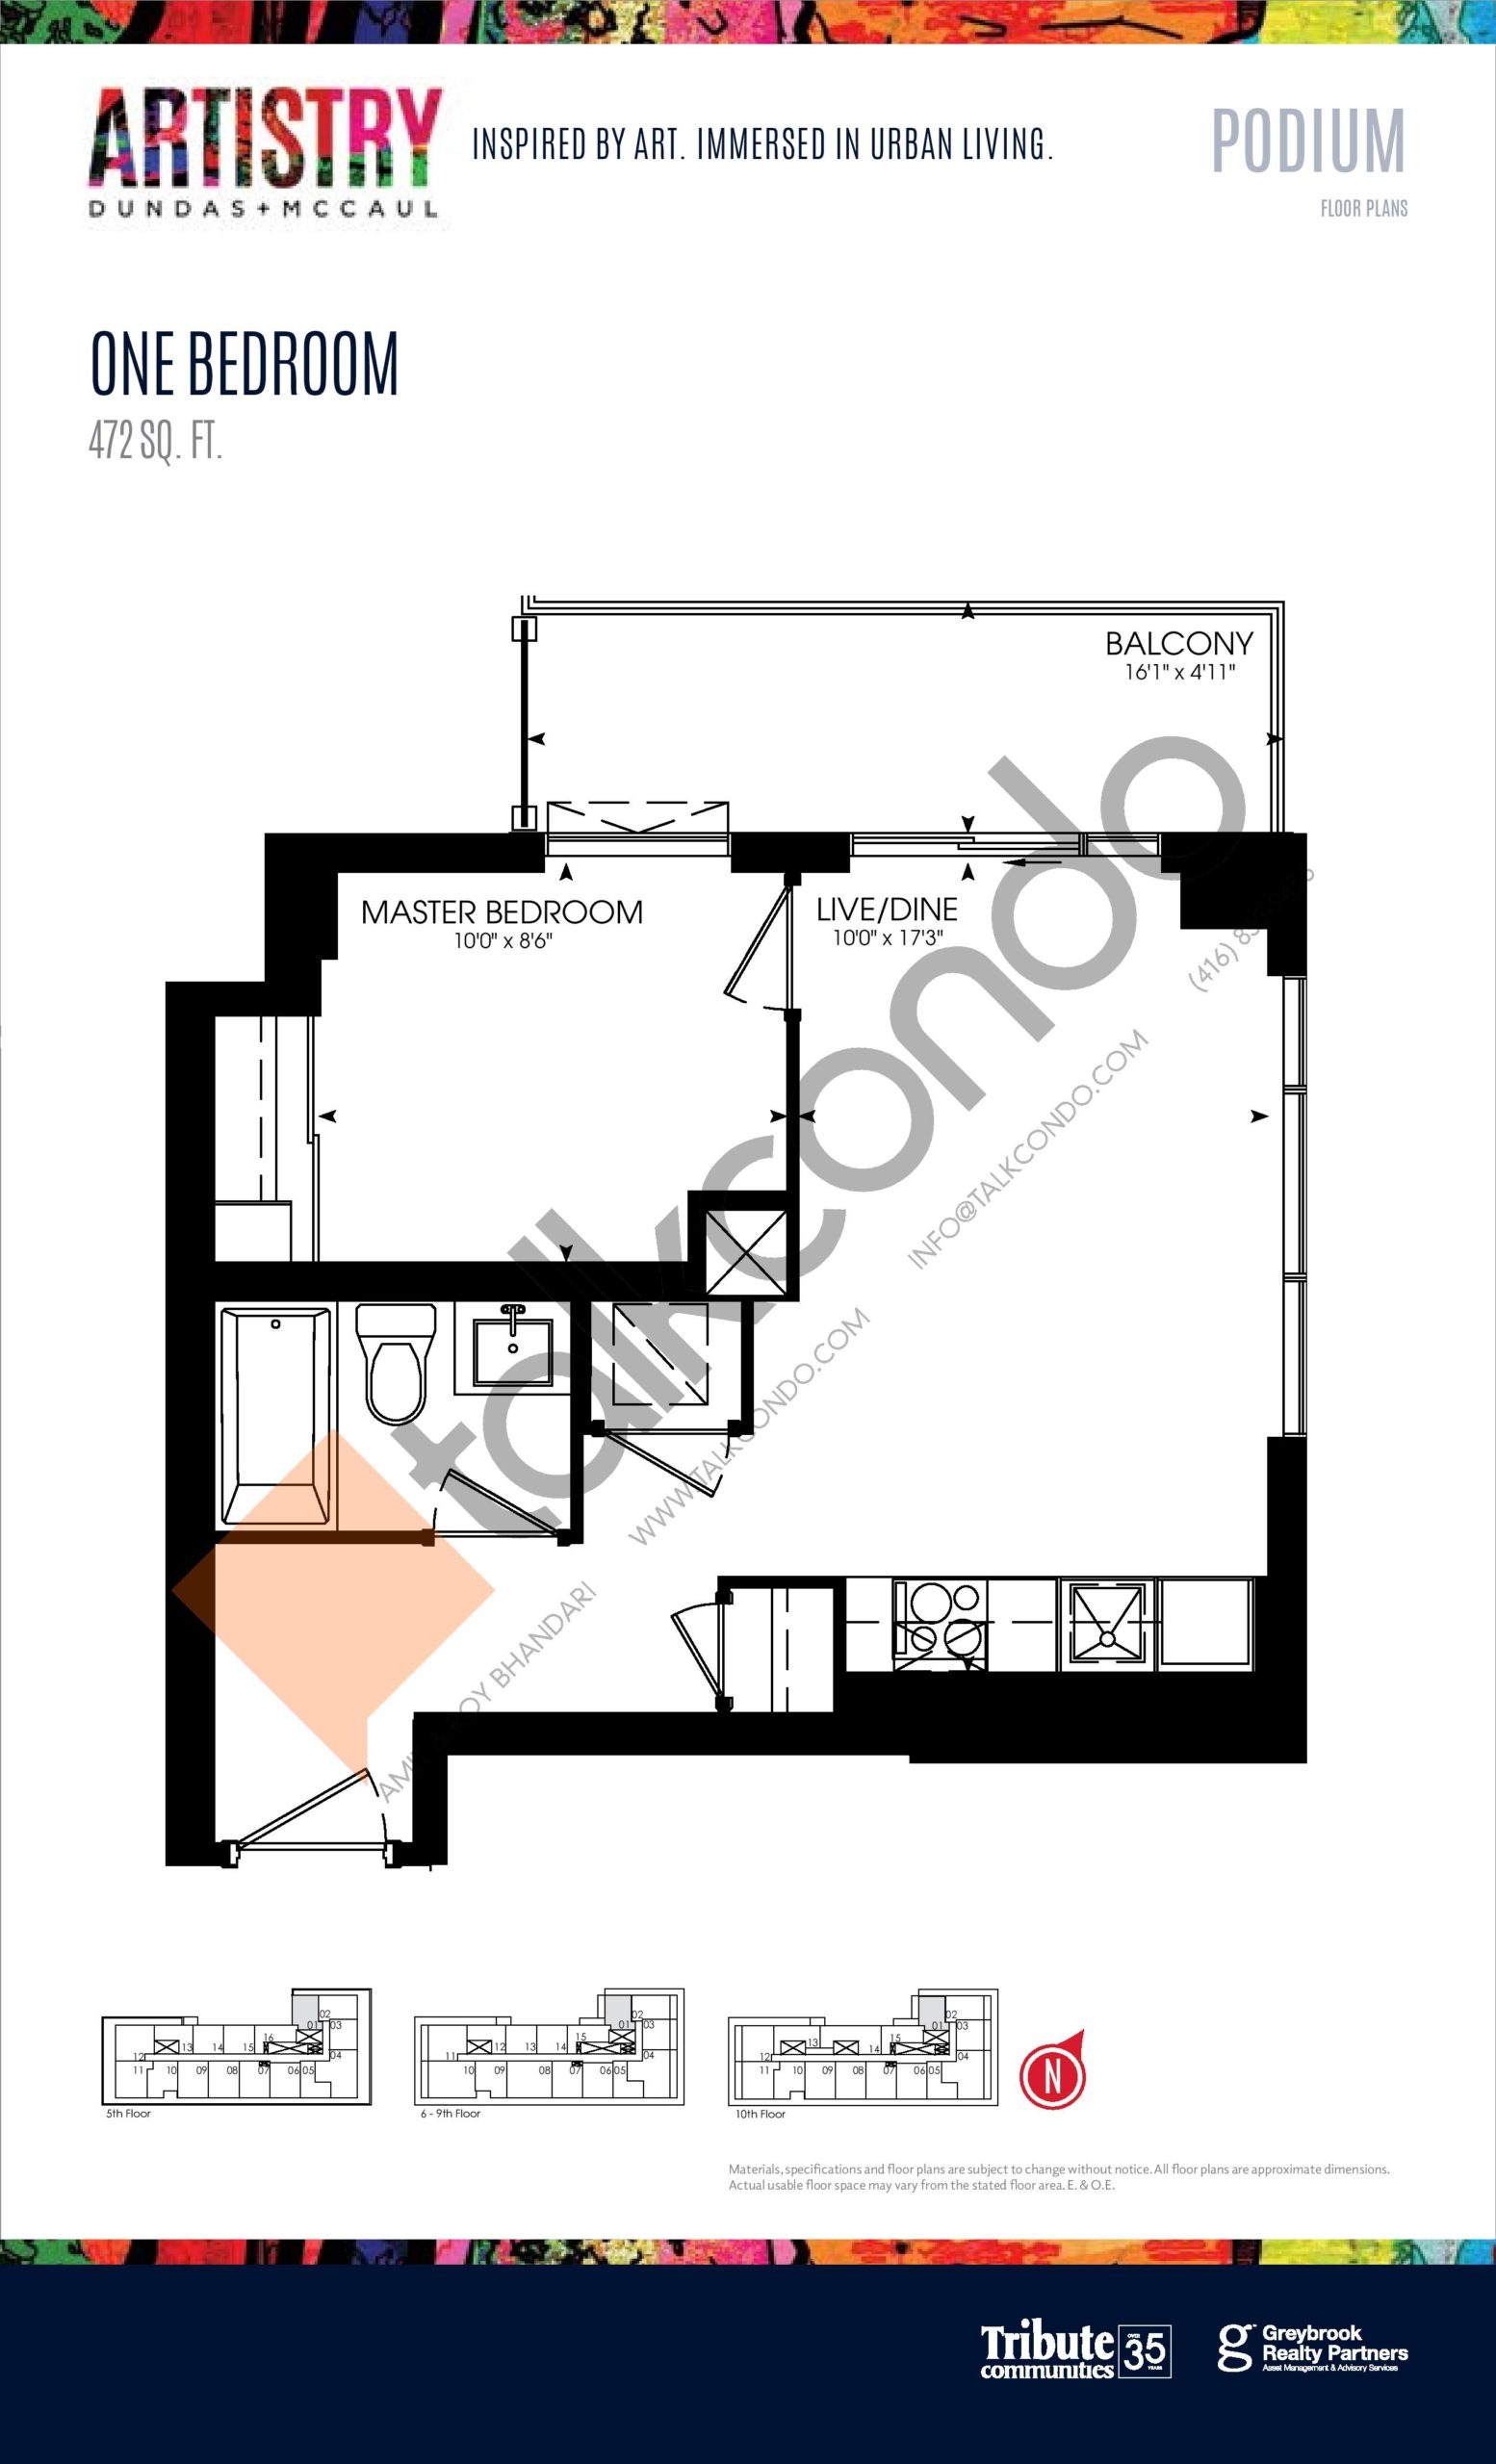 472 sq. ft. - Podium Floor Plan at Artistry Condos - 472 sq.ft